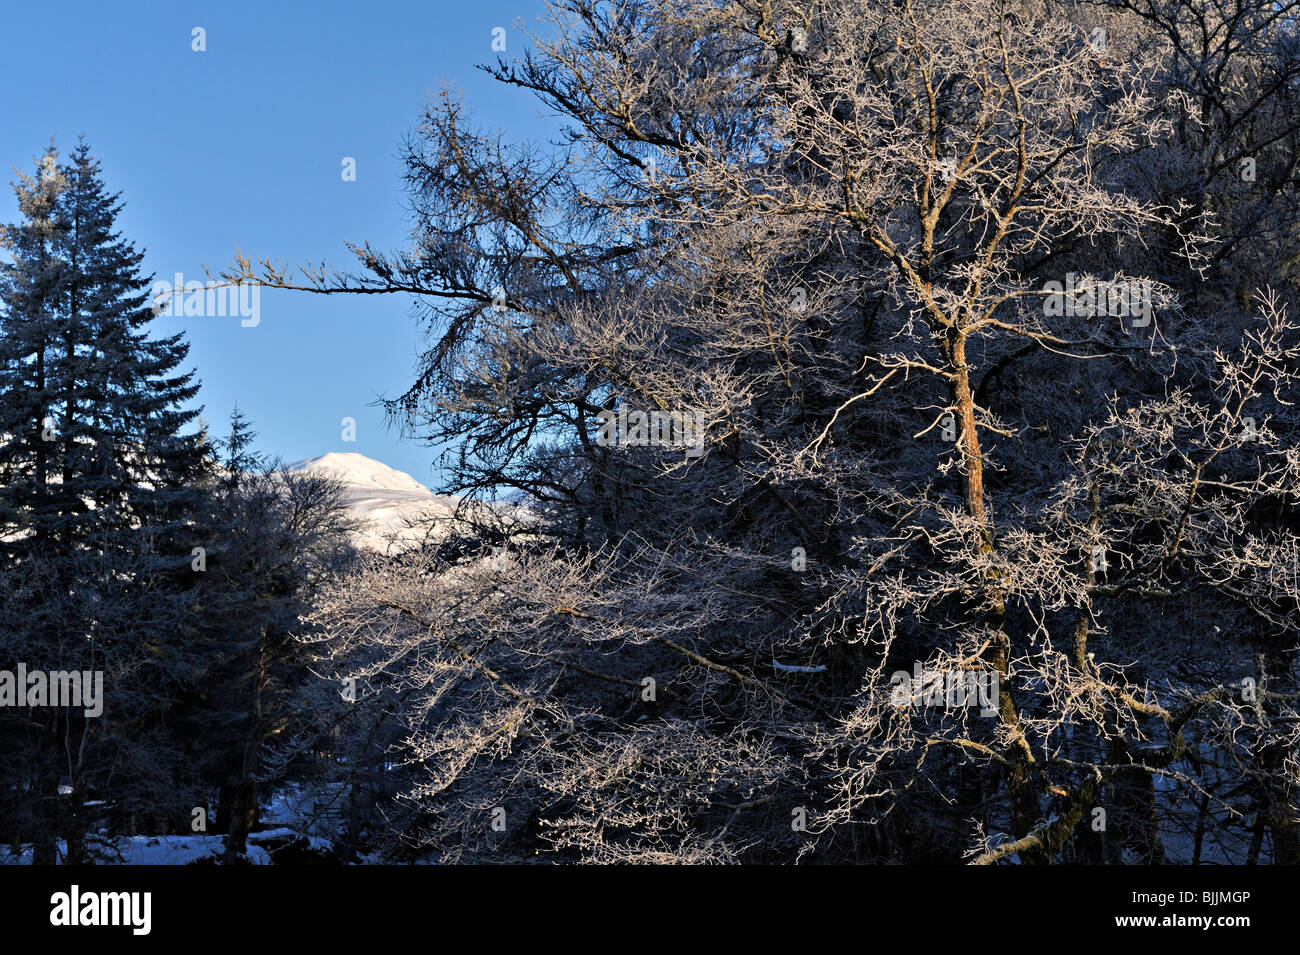 Frosted branches outlined against blue winter sky and snow-clad mountains near Killin, Perthshire, Scotland, UK - Stock Image